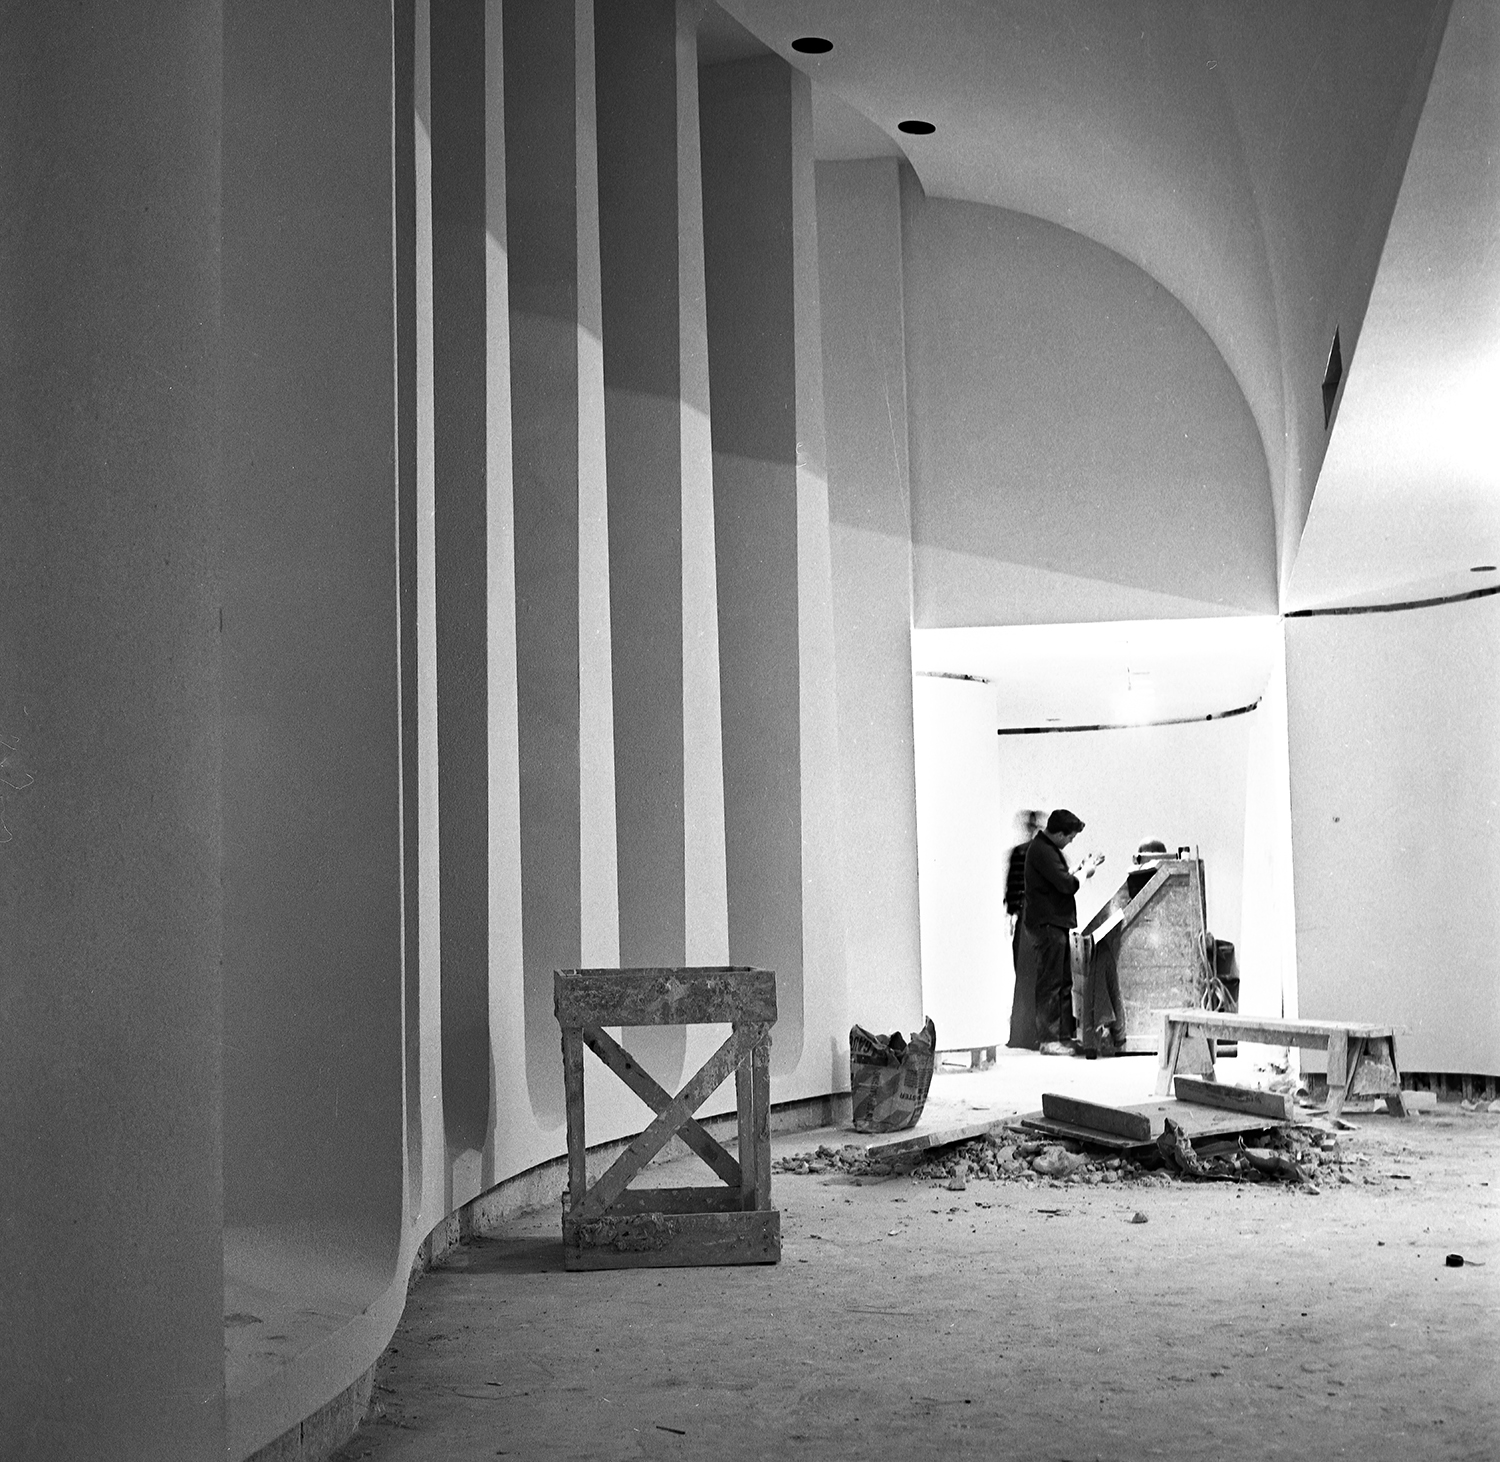 Old State Capitol State Historic Site preparations in the Illinois State Historical Library before official opening ceremony on Dec. 3, 1968. Photographed Dec. 2, 1968. File/The State Journal-Register